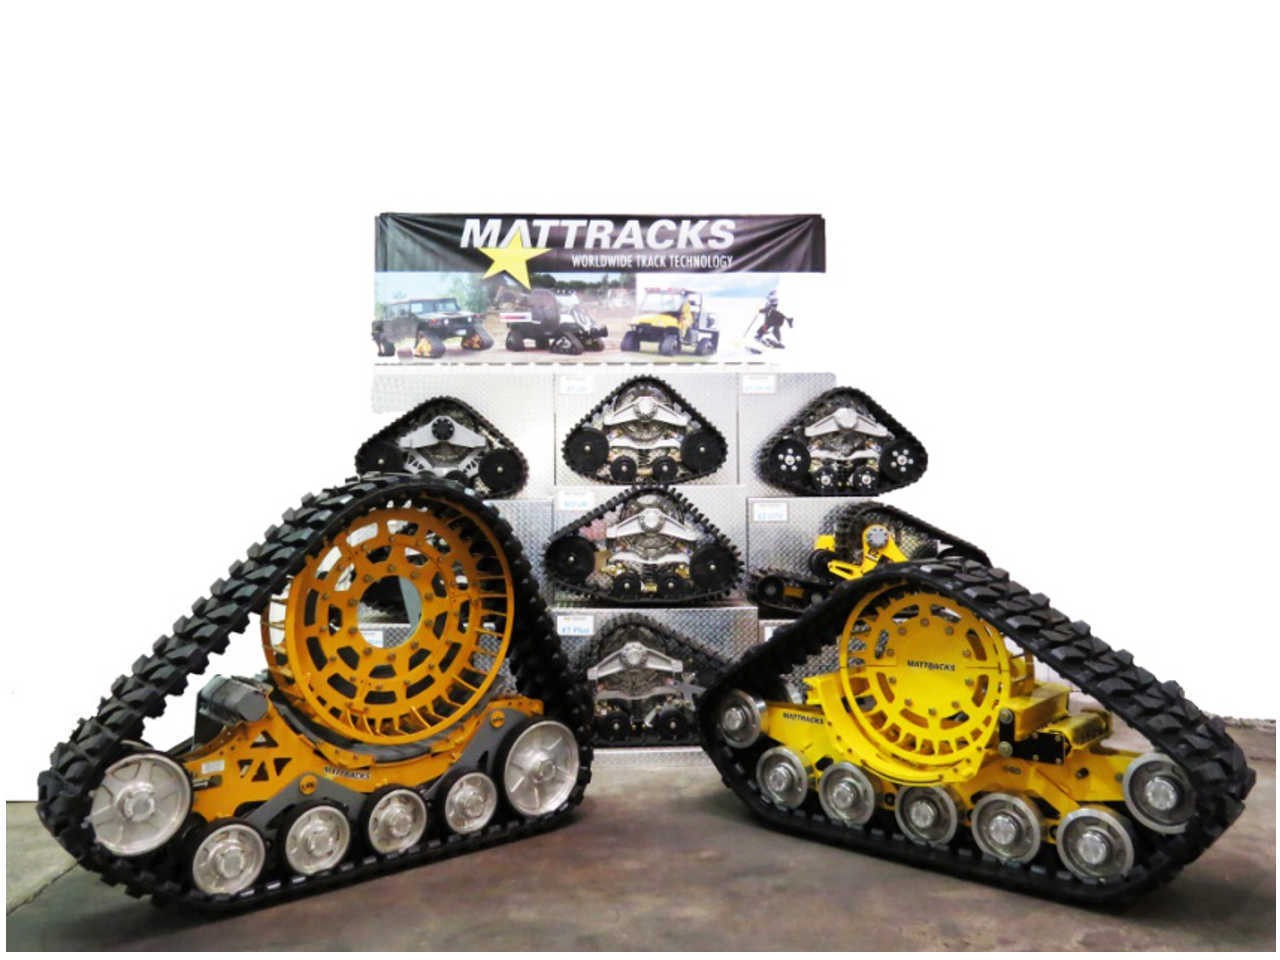 Tractor Track System : Mattracks releases new ag track series atv illustrated